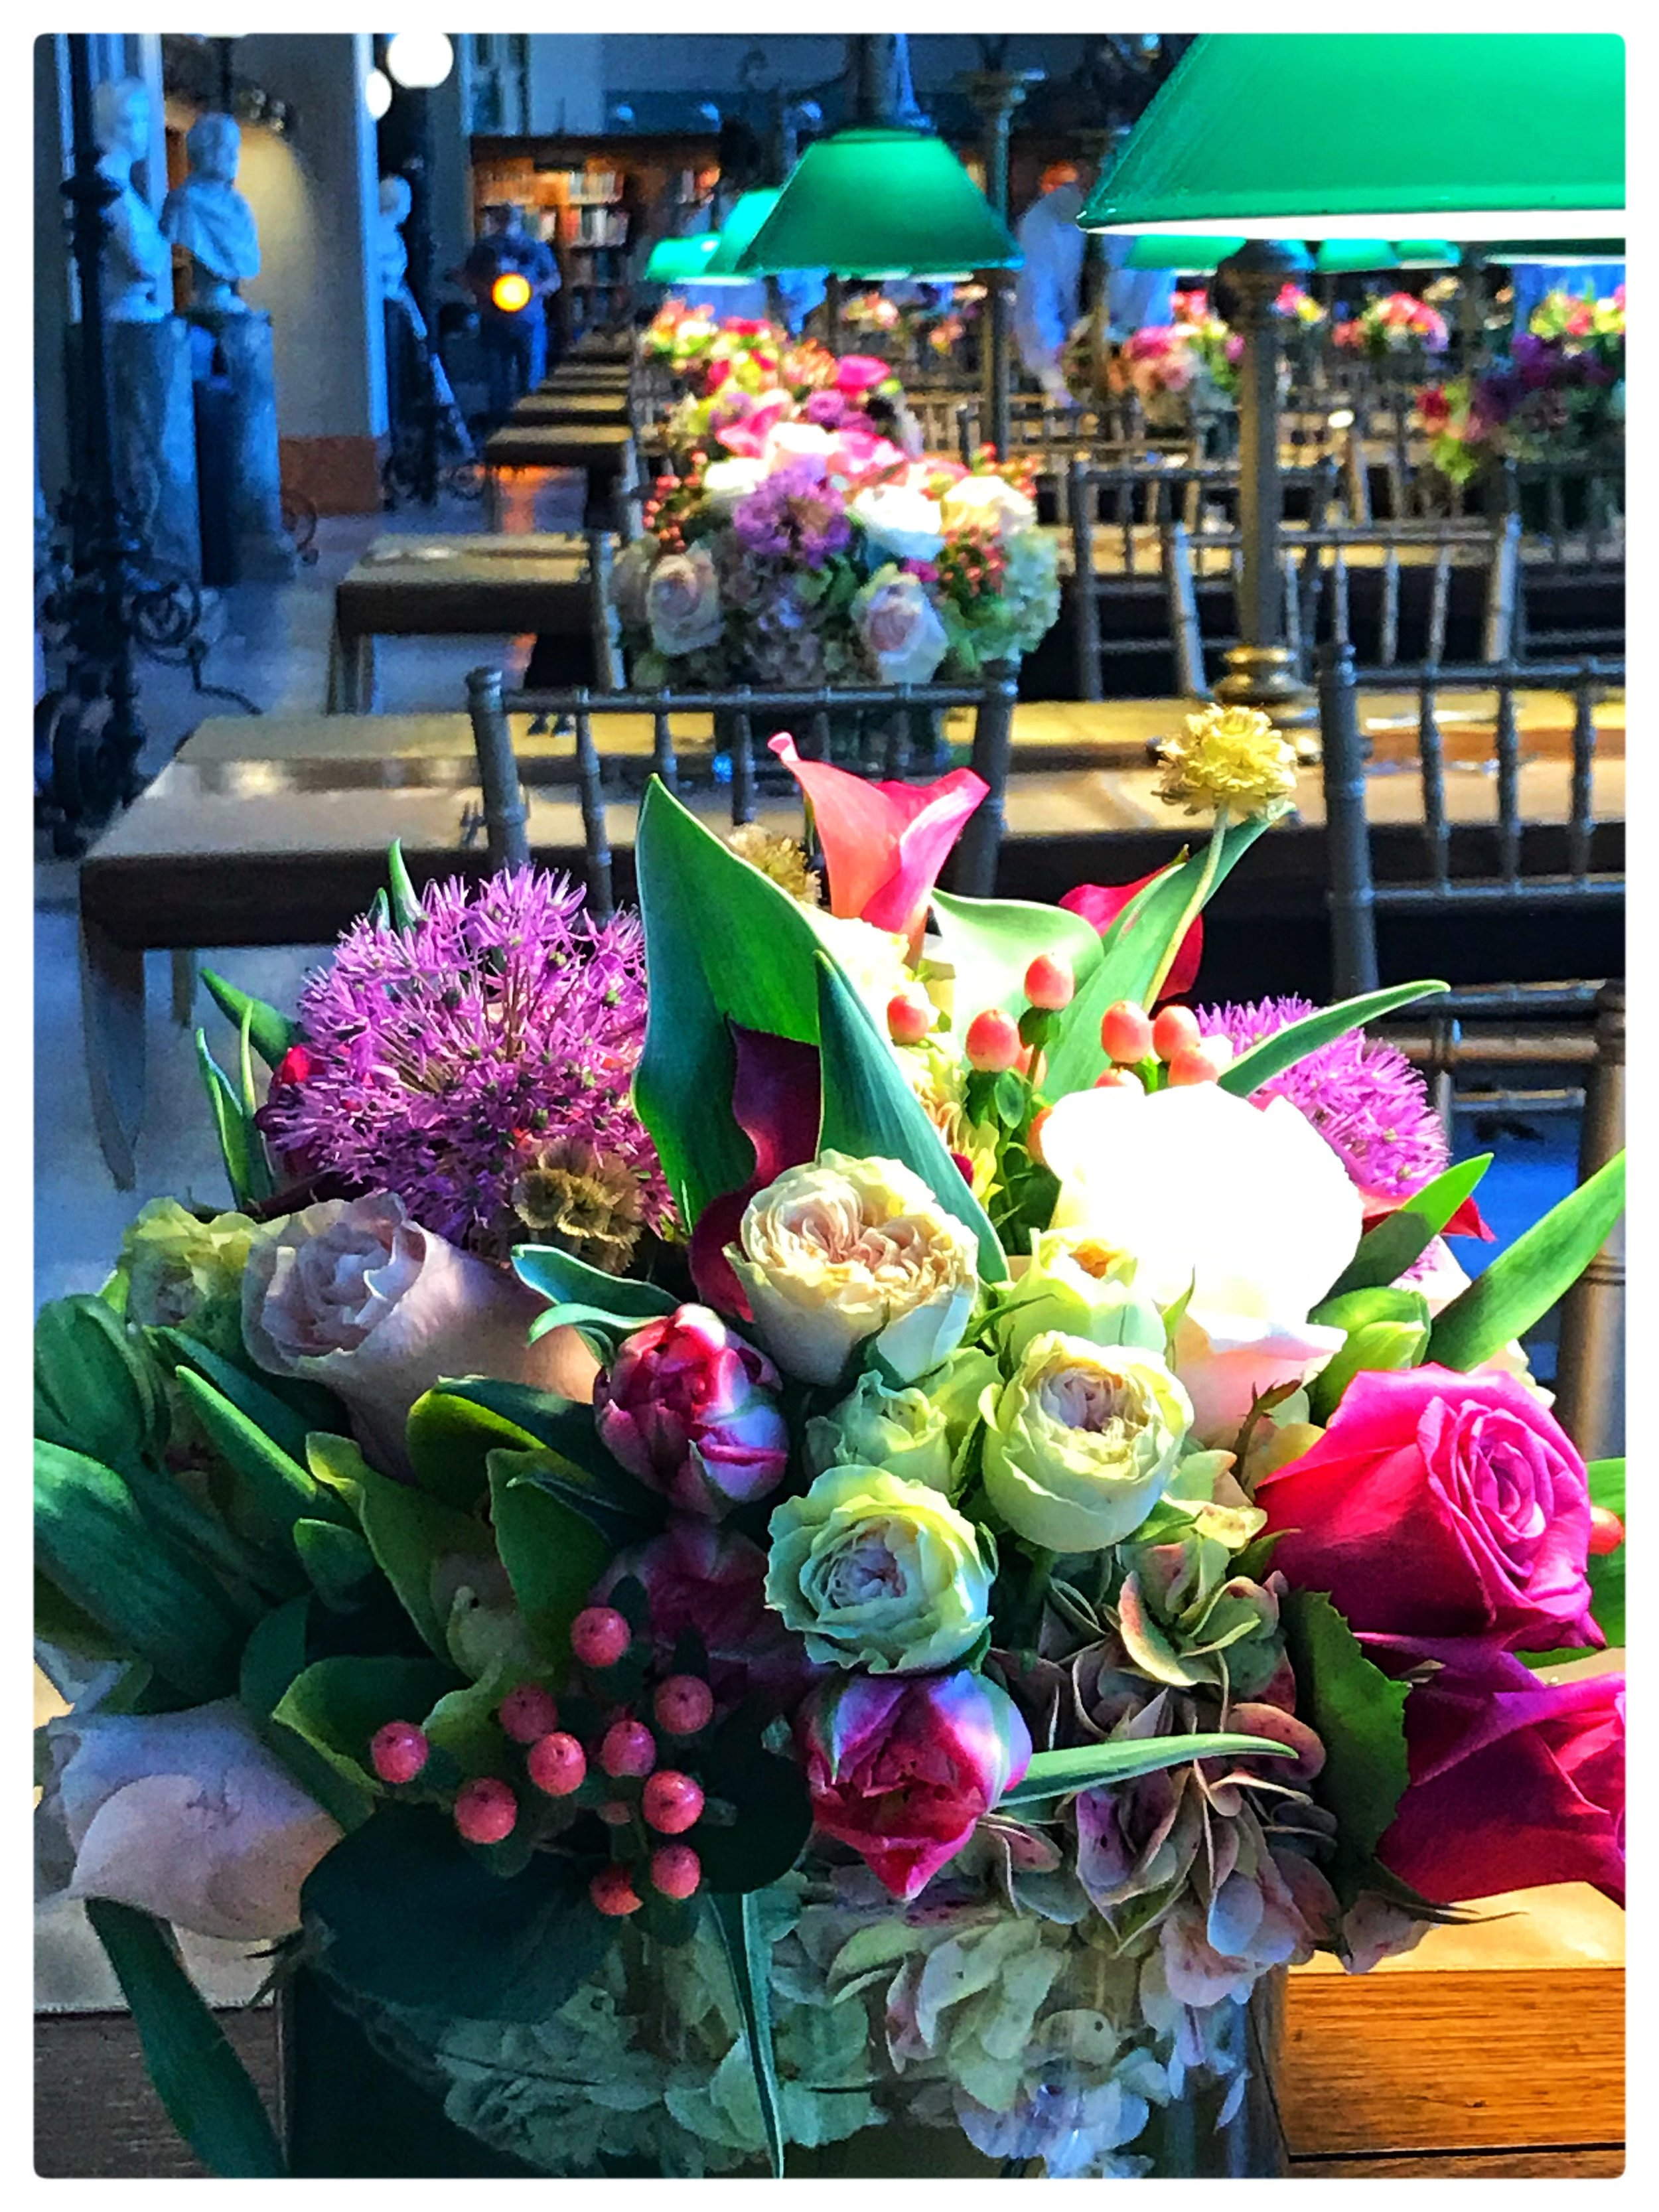 Flower arrangements made by Russo's for a special event at the Boston Public Library.